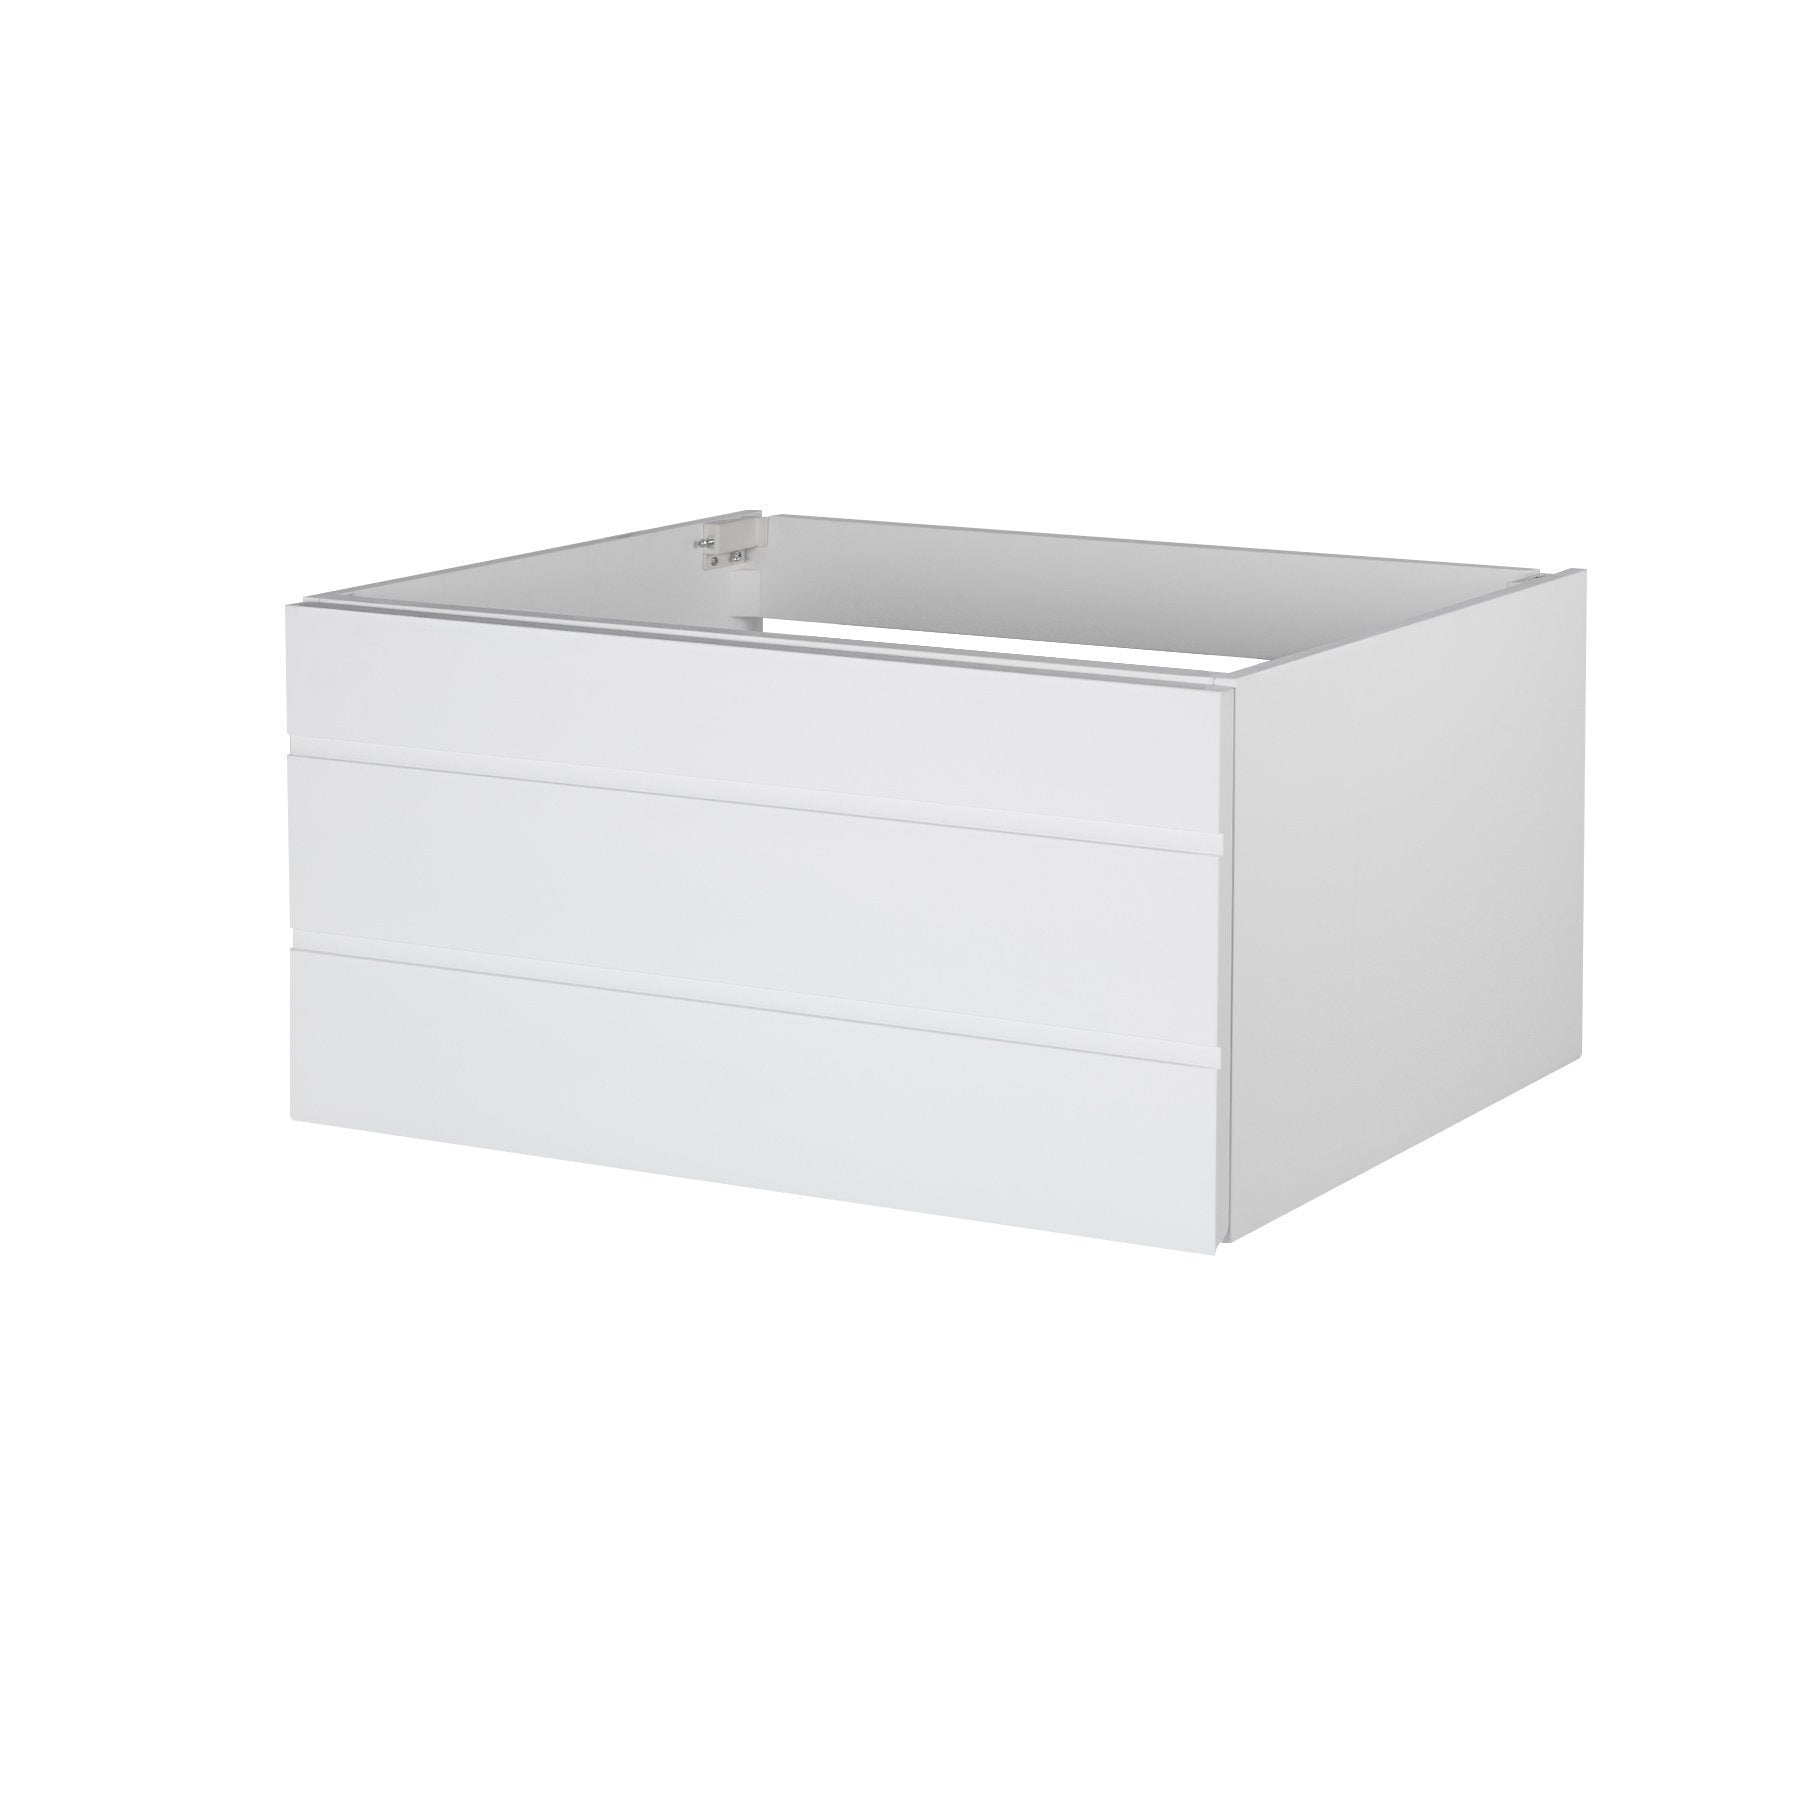 Shop maykke dani 36 bathroom vanity cabinet in birch wood white finish modern and minimalist single wall mounted floating base cabinet only ysa1203601